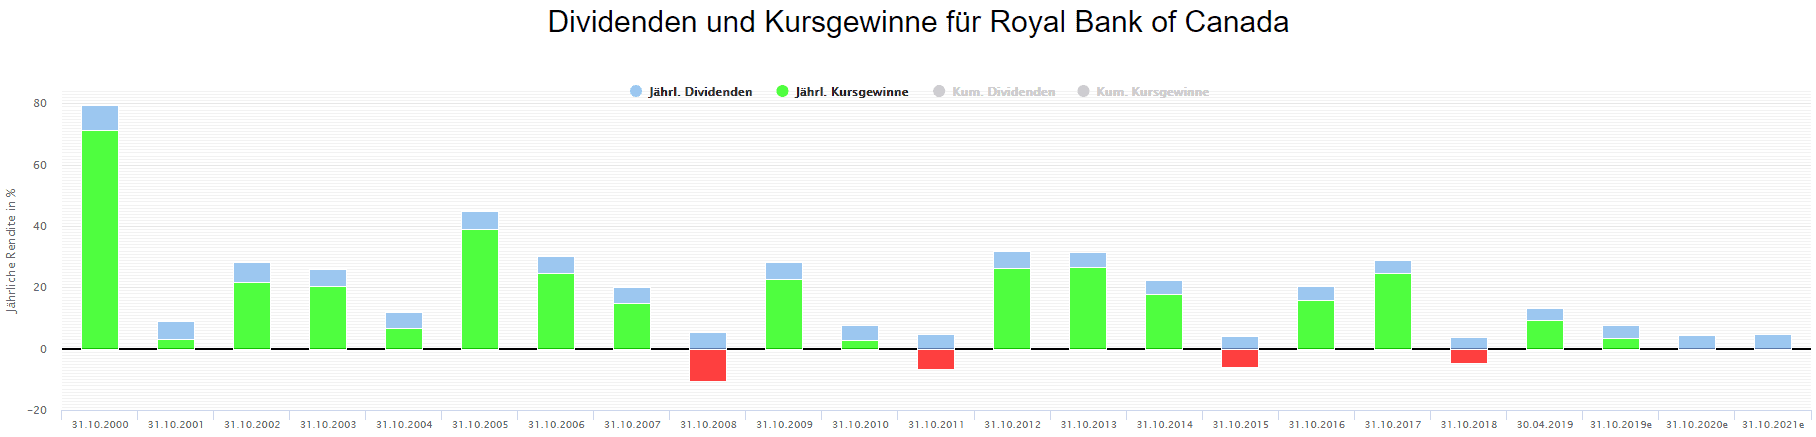 Performance der Aktie der Royal Bank of Canada auf Jahresbasis (Quelle: Aktienfinder.Net)